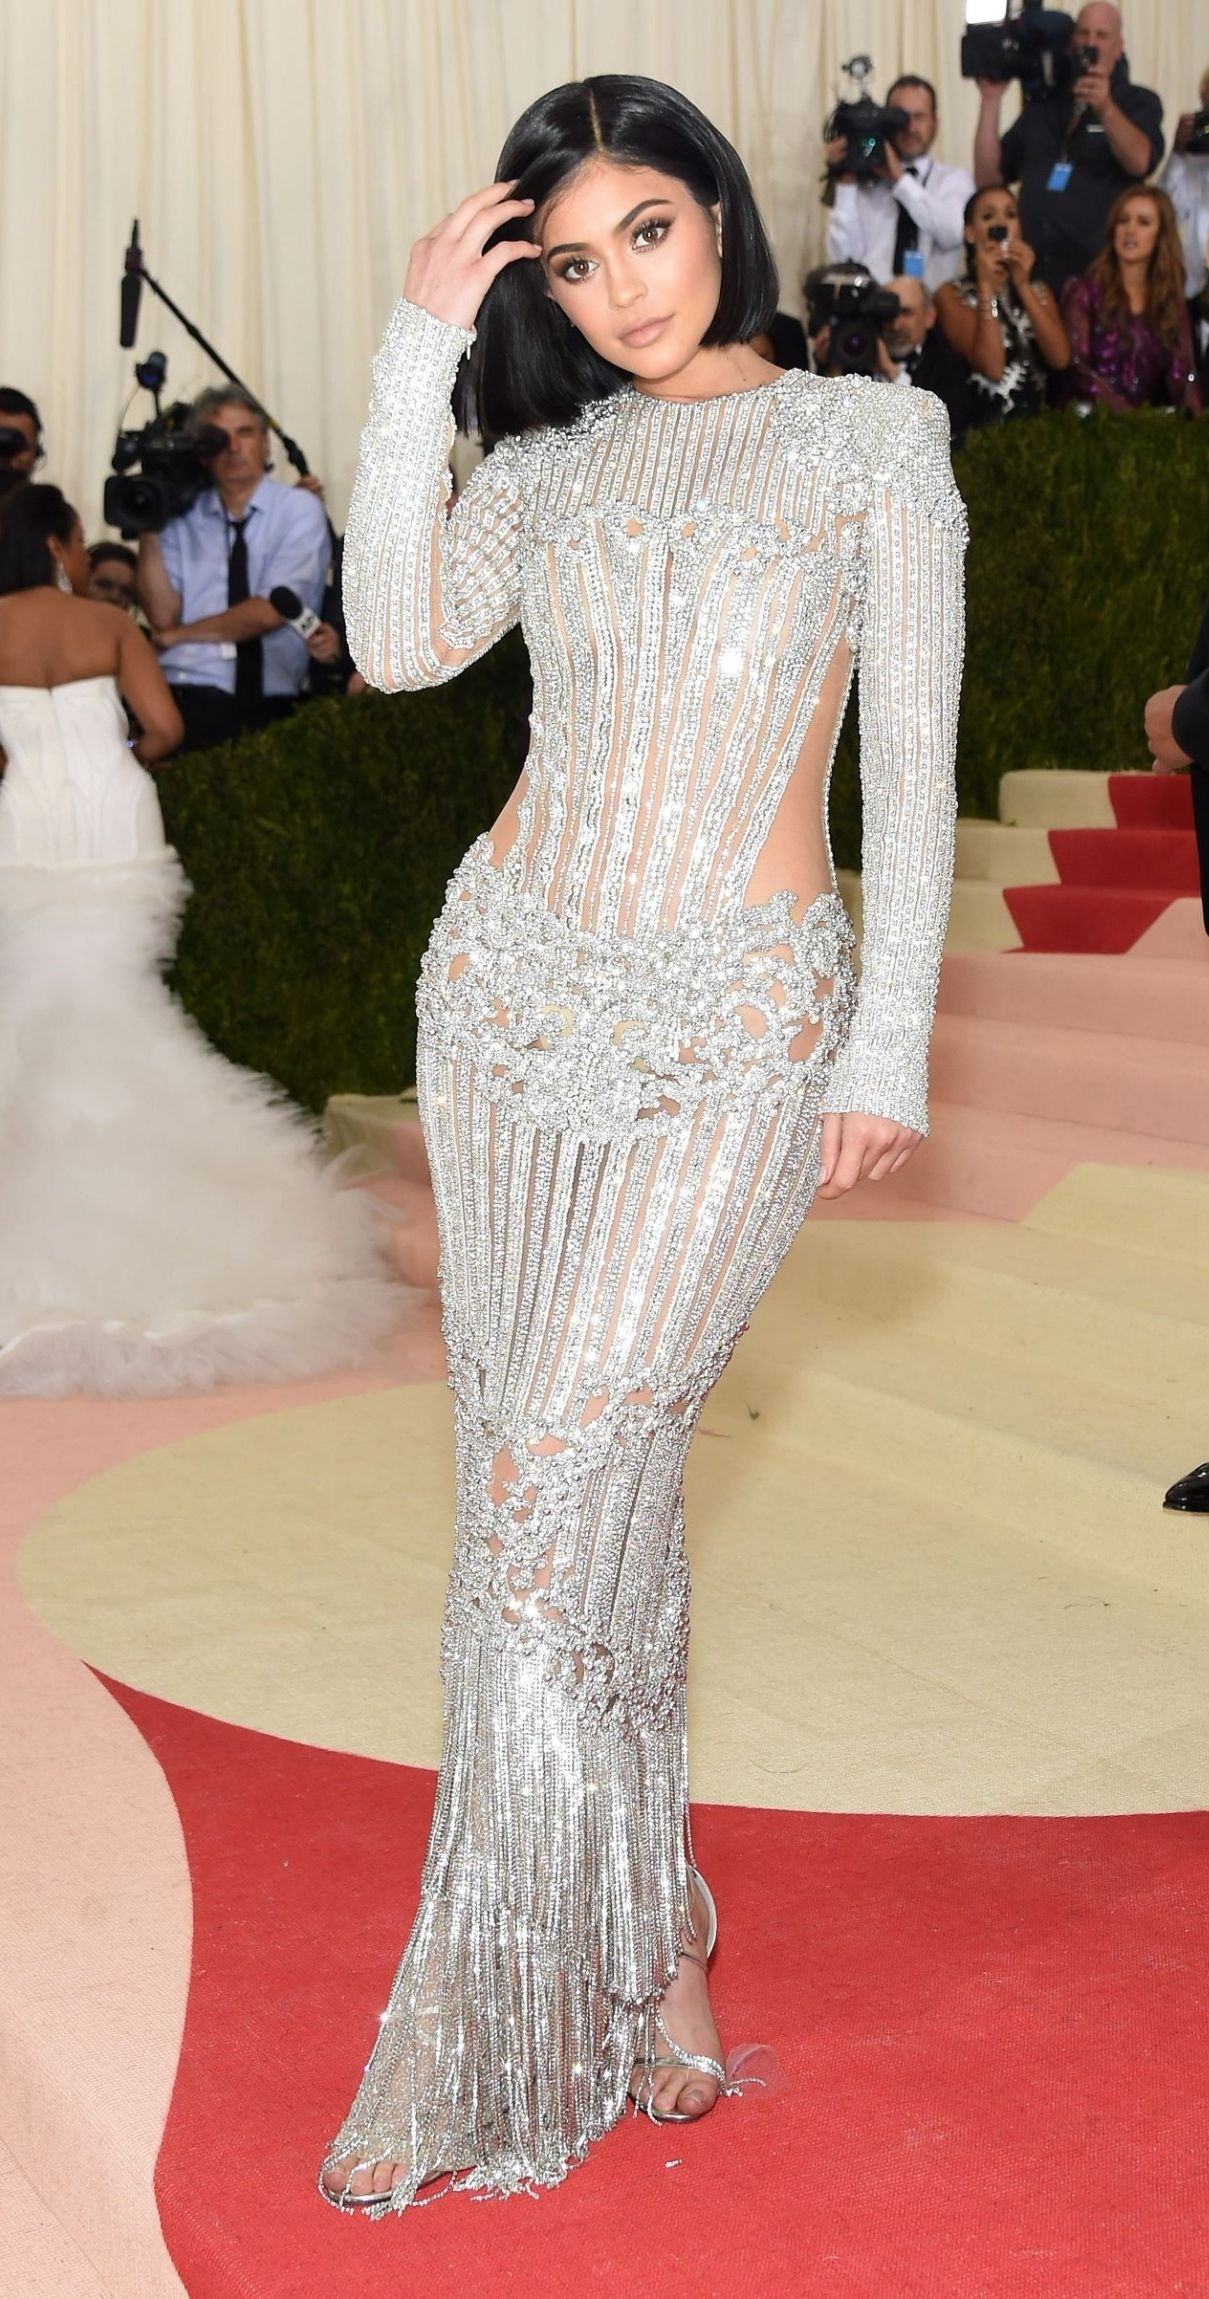 5ba38bf5115 Kylie Jenner In a Silver Balmain Dress at the 2016 Met Gala    See What